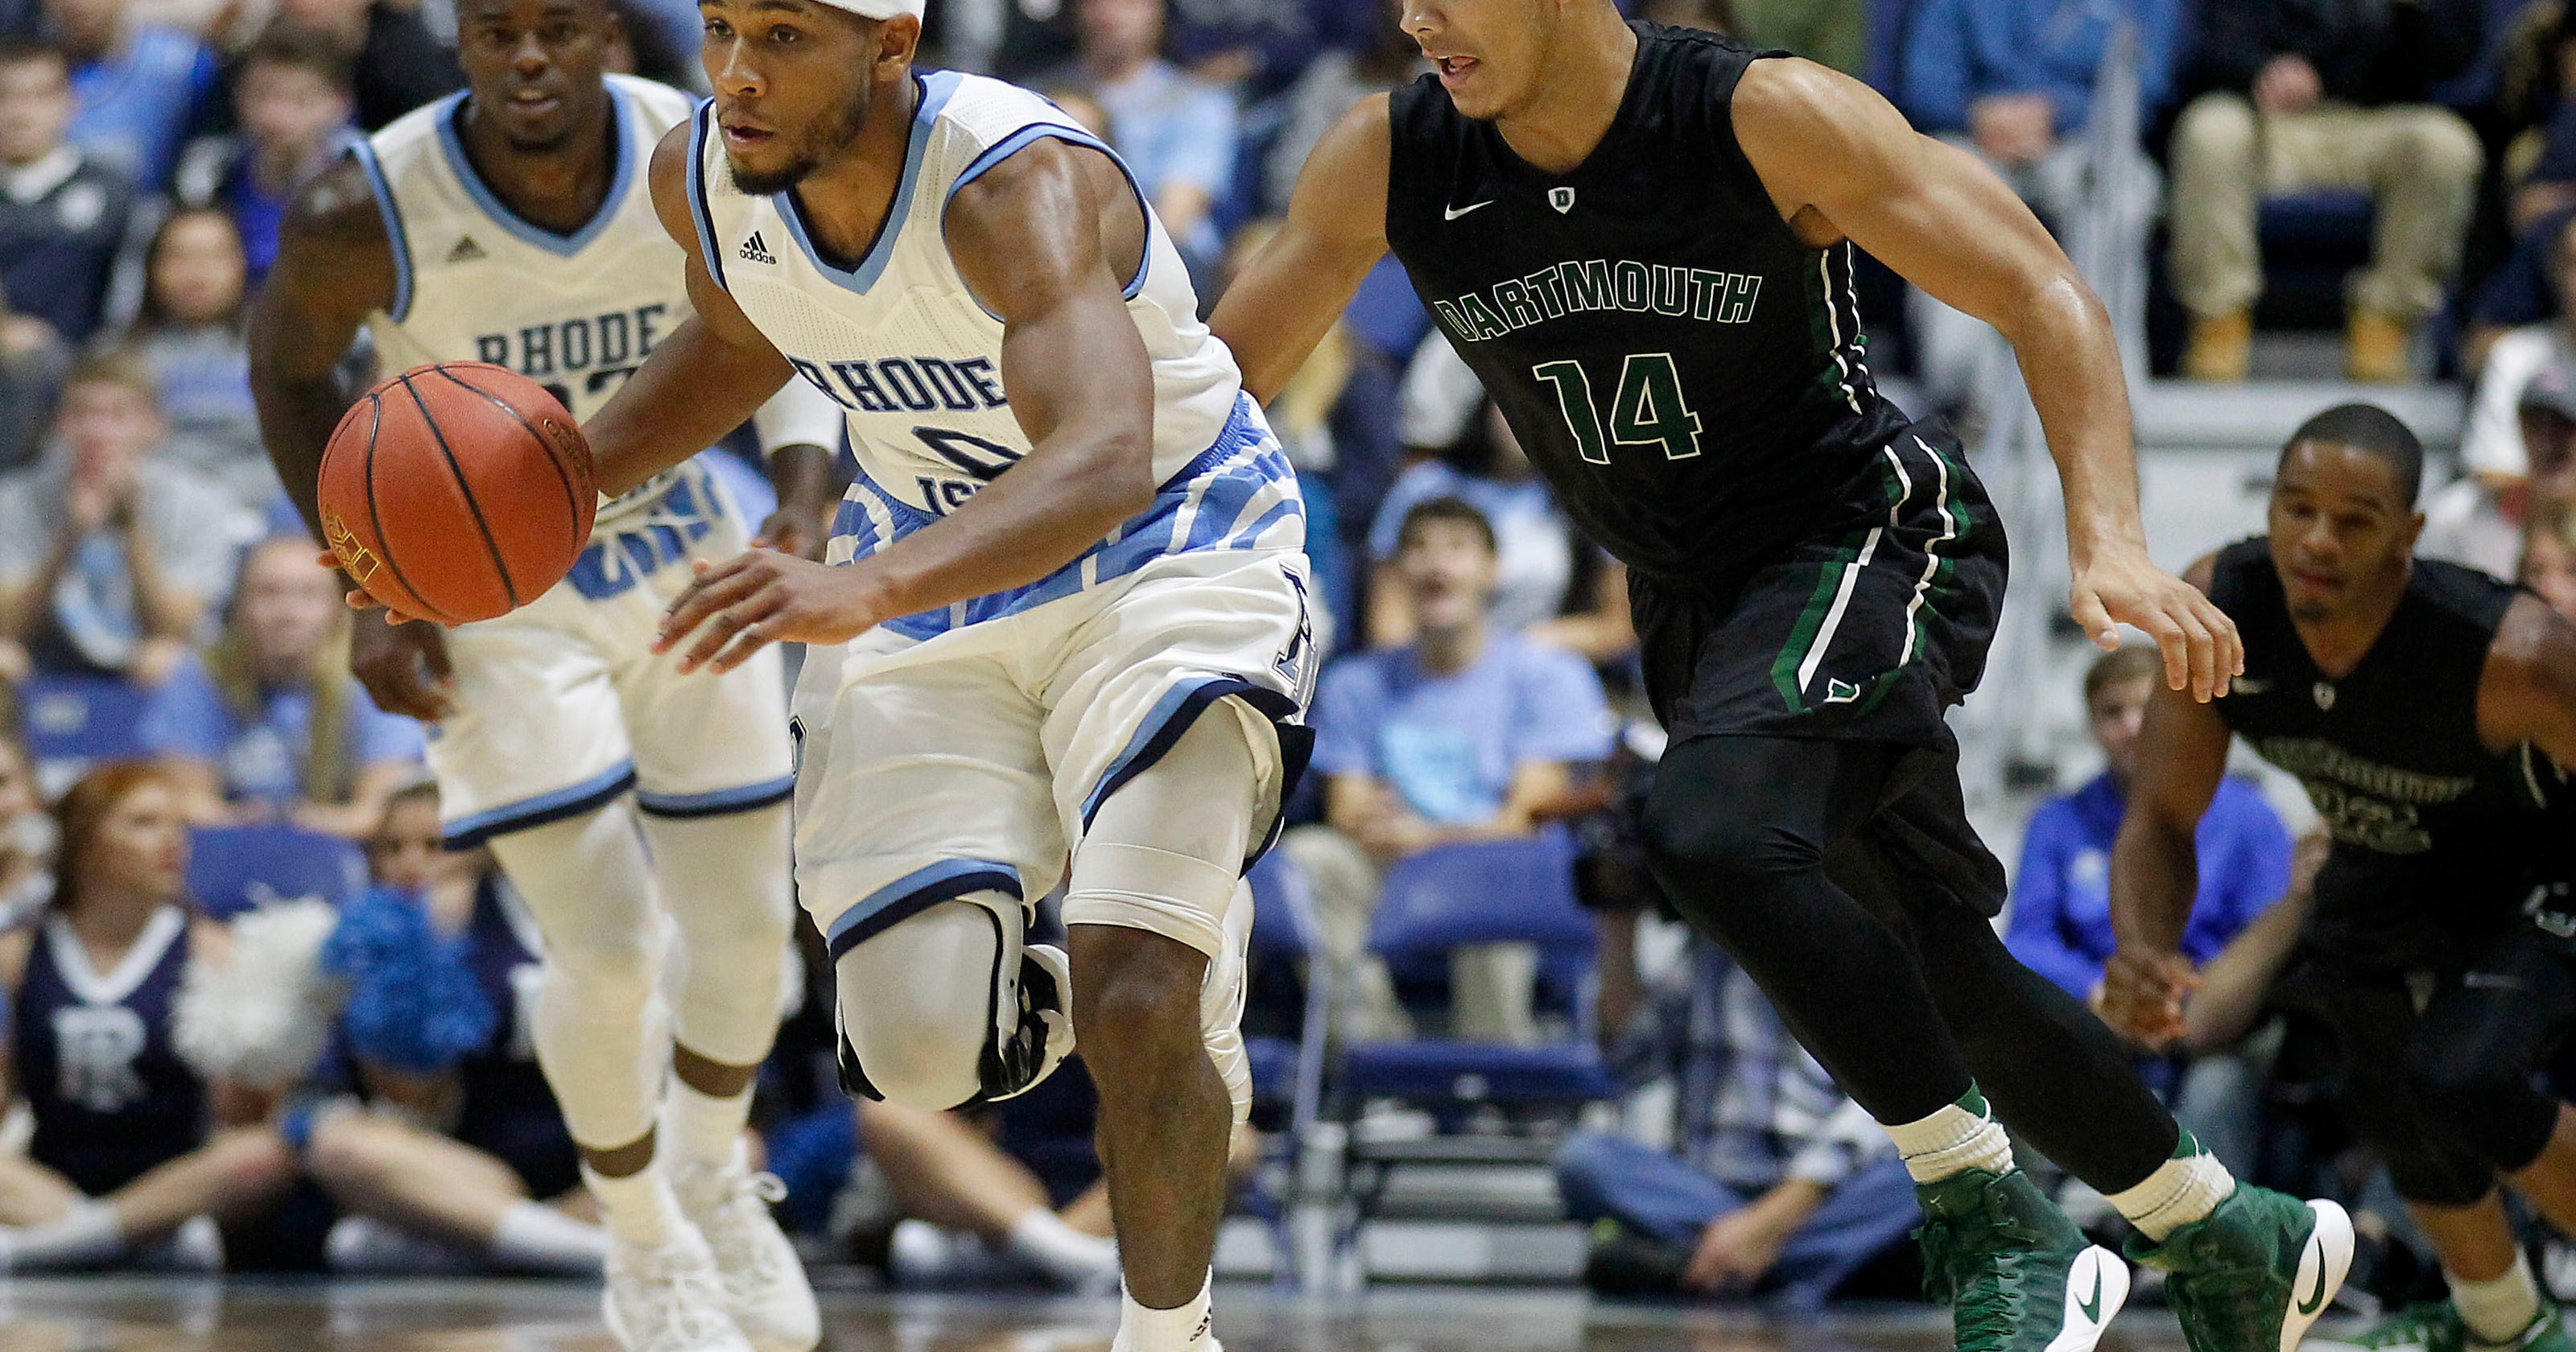 a2d7213bcec Matthews helps No. 23 Rhode Island beat Dartmouth 84-60